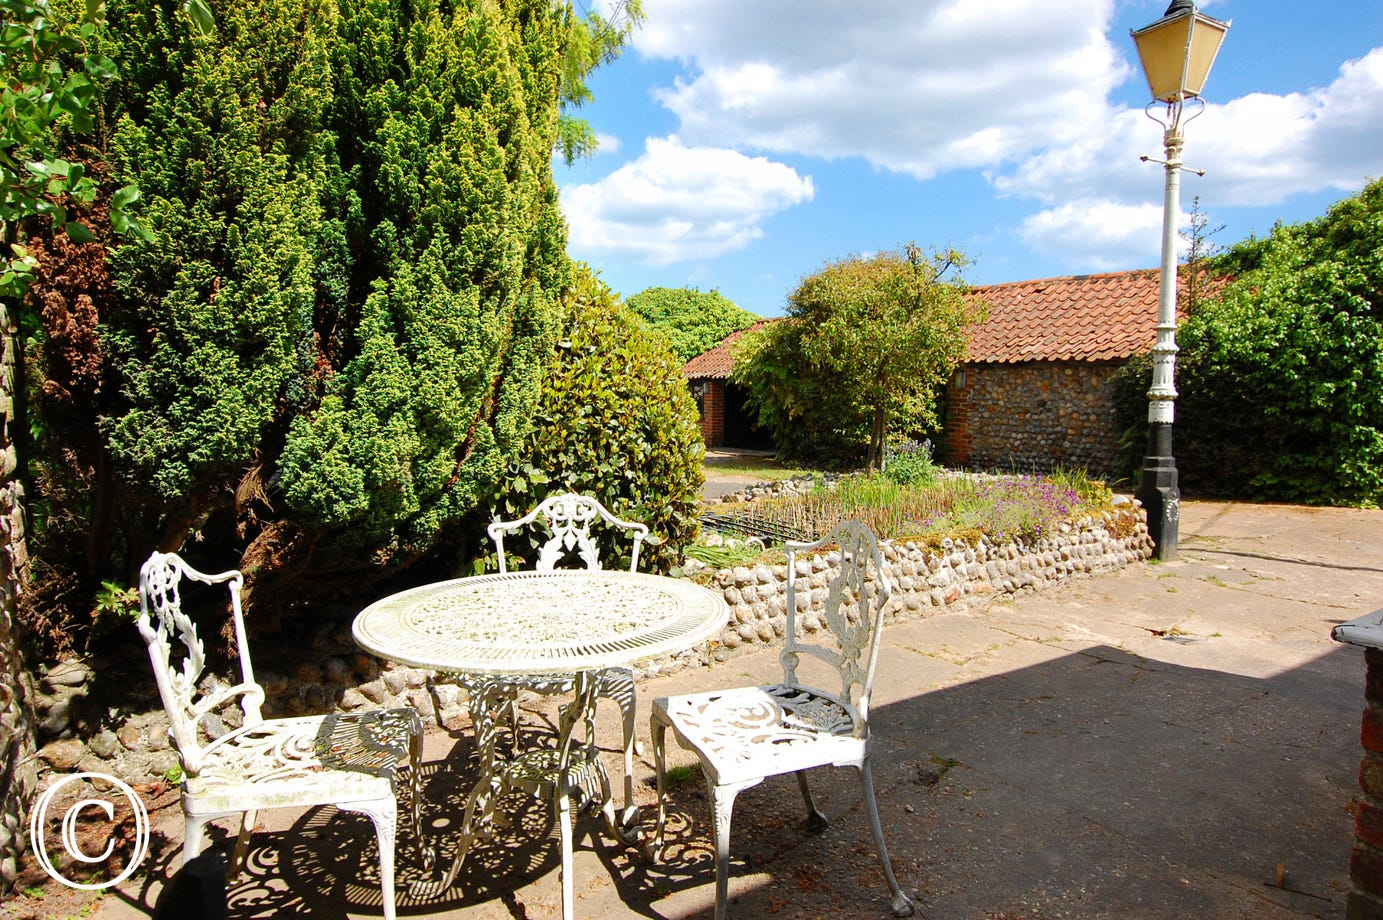 The patio has garden furniture and a barbecue, perfect for al fresco dining